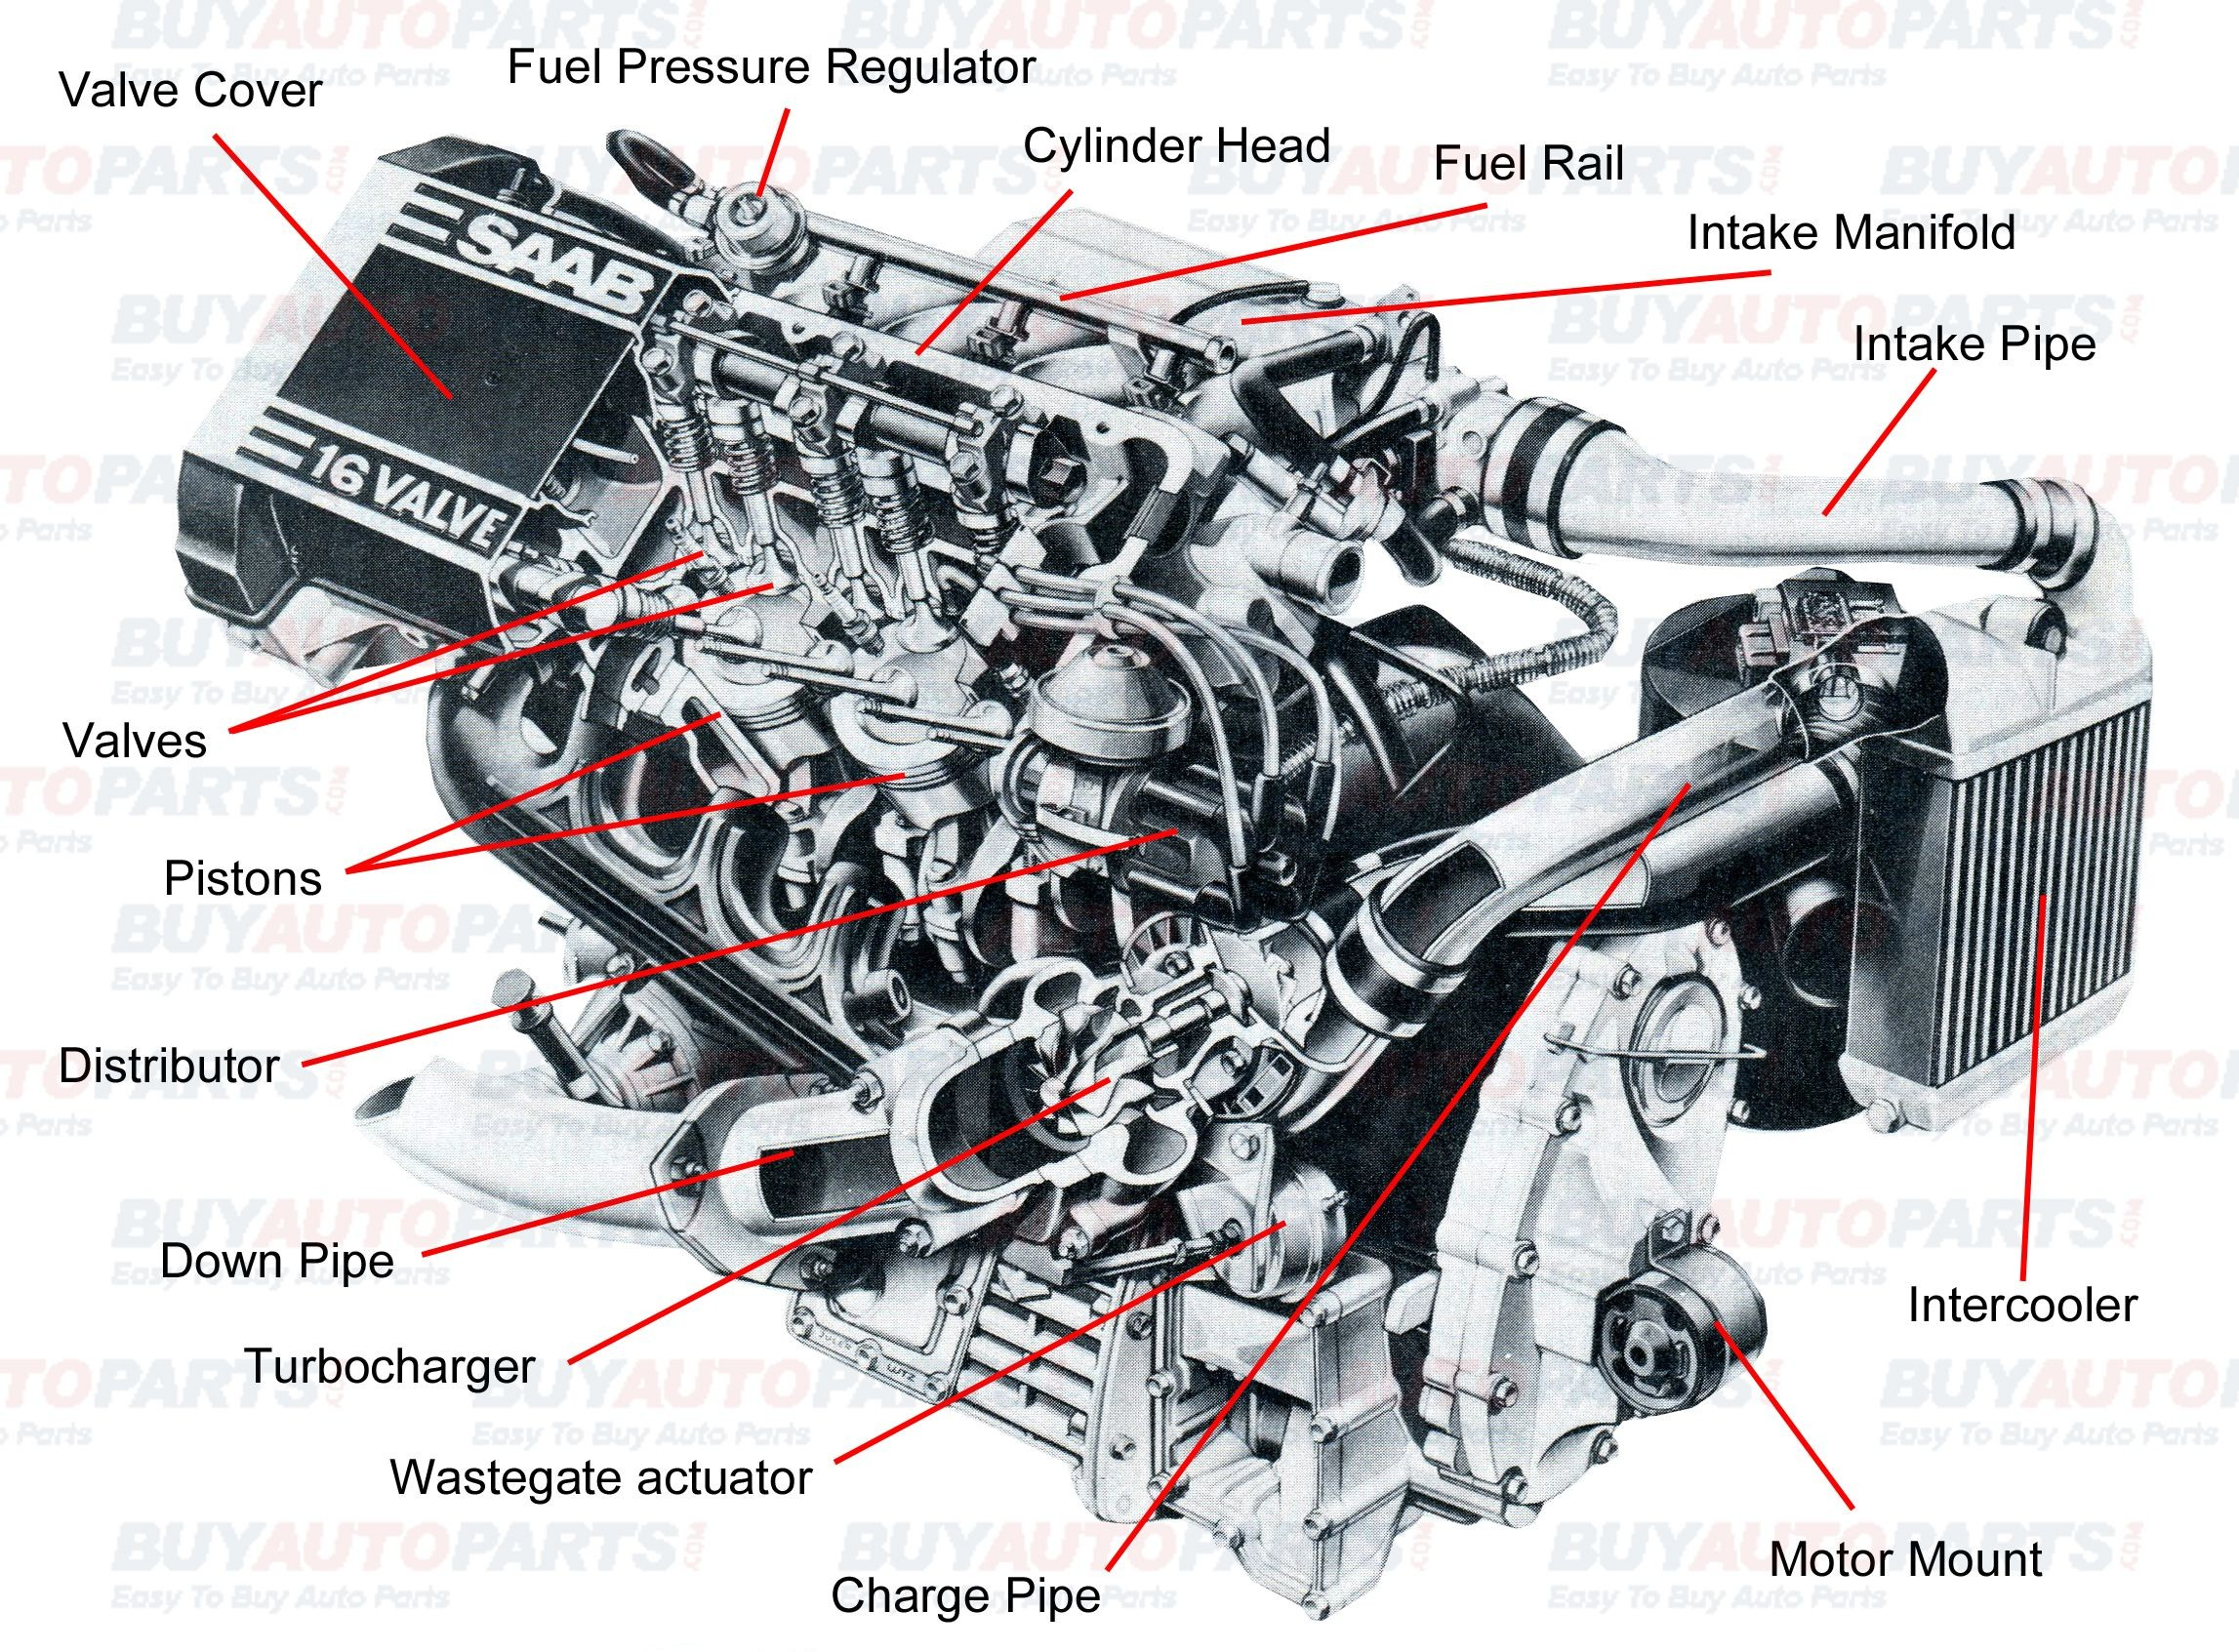 Automotive Parts Diagram Pin by Jimmiejanet Testellamwfz On What Does An Engine with Turbo